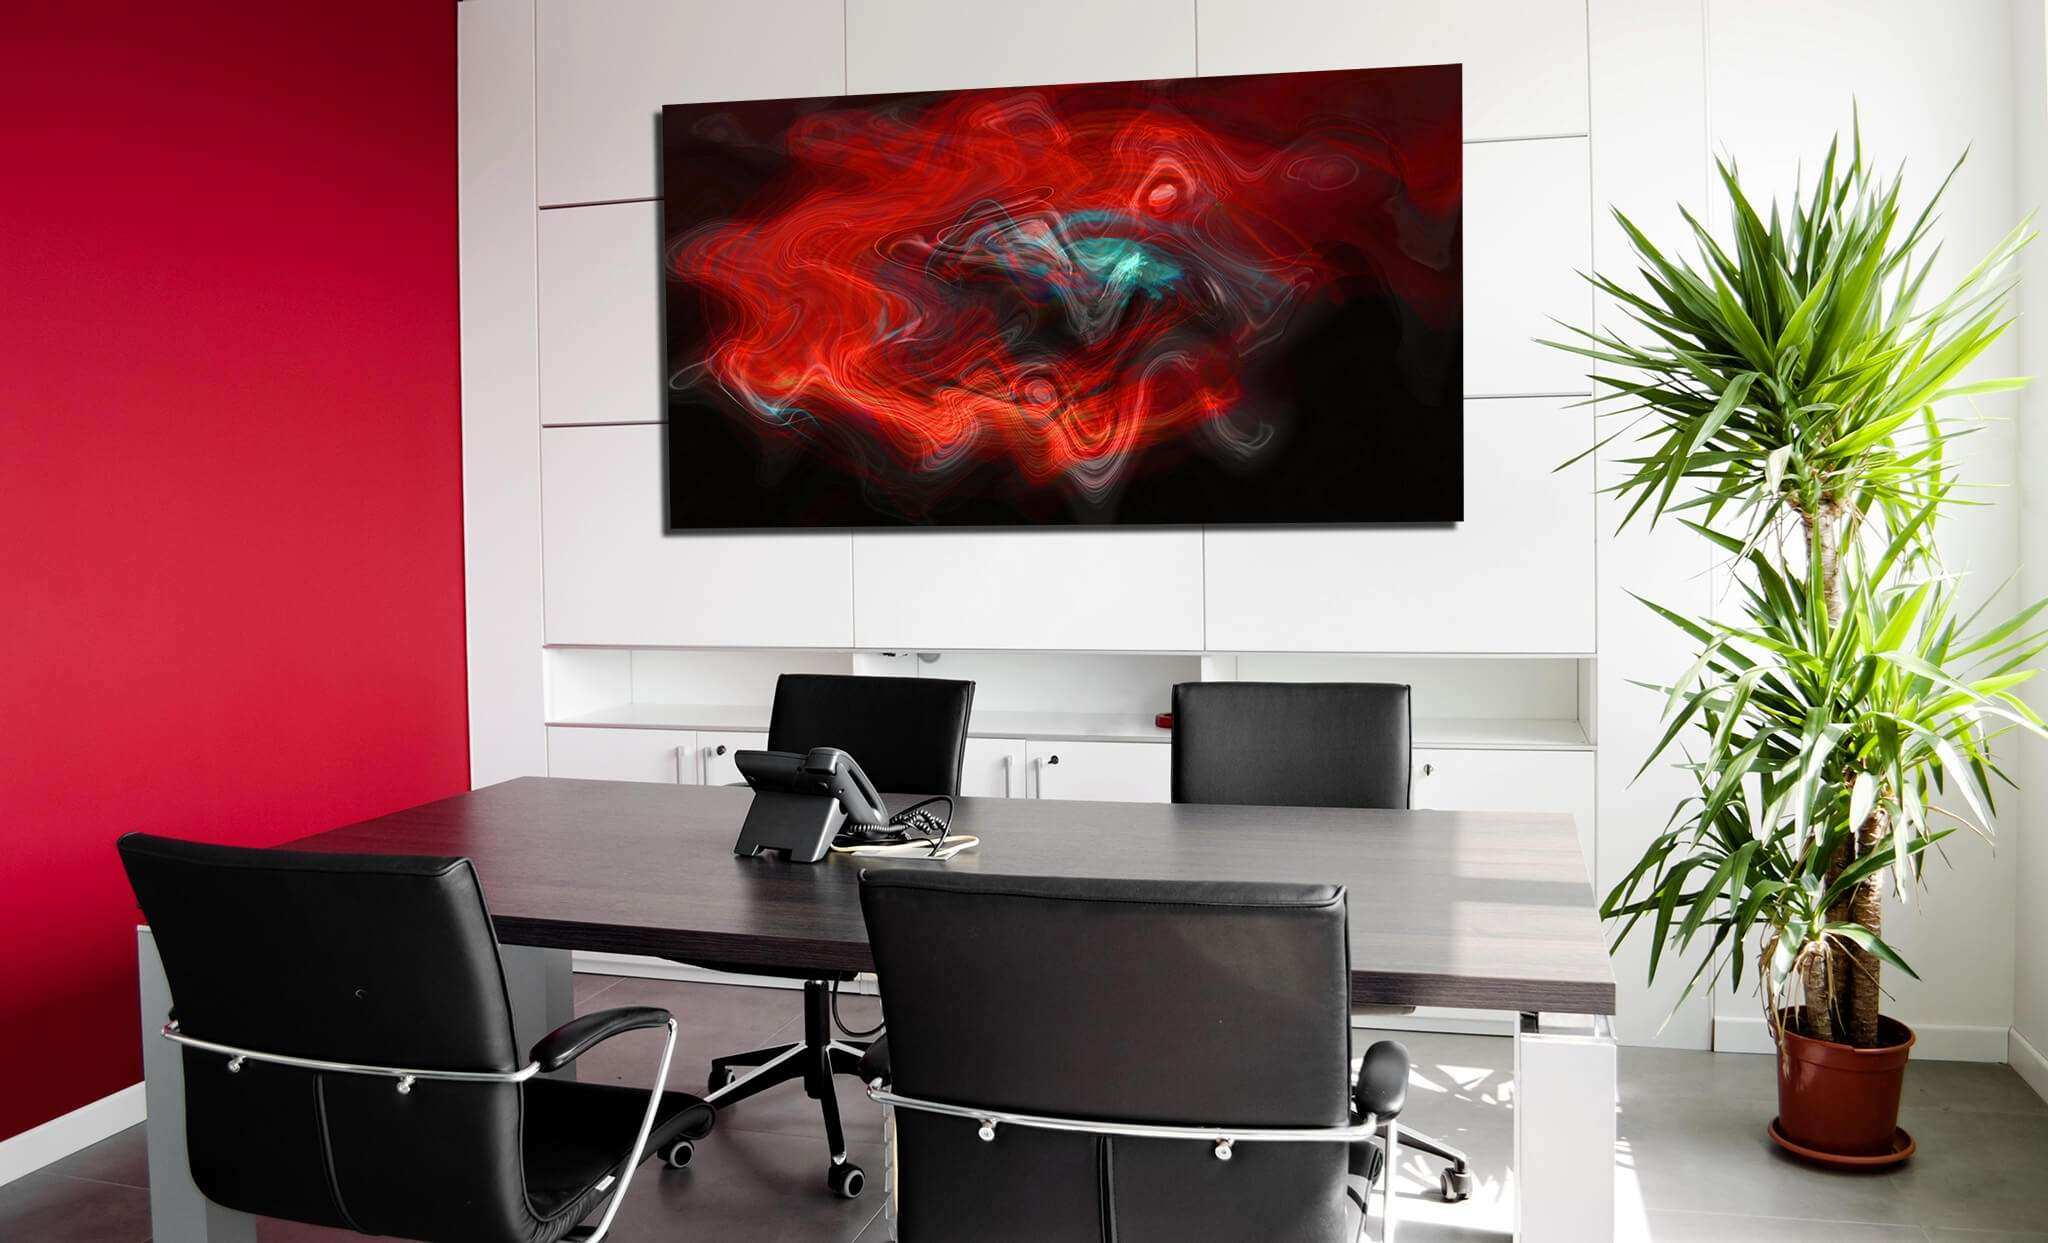 Wall Art Lastest Collection fice Wall Art Ideas Make Your Own